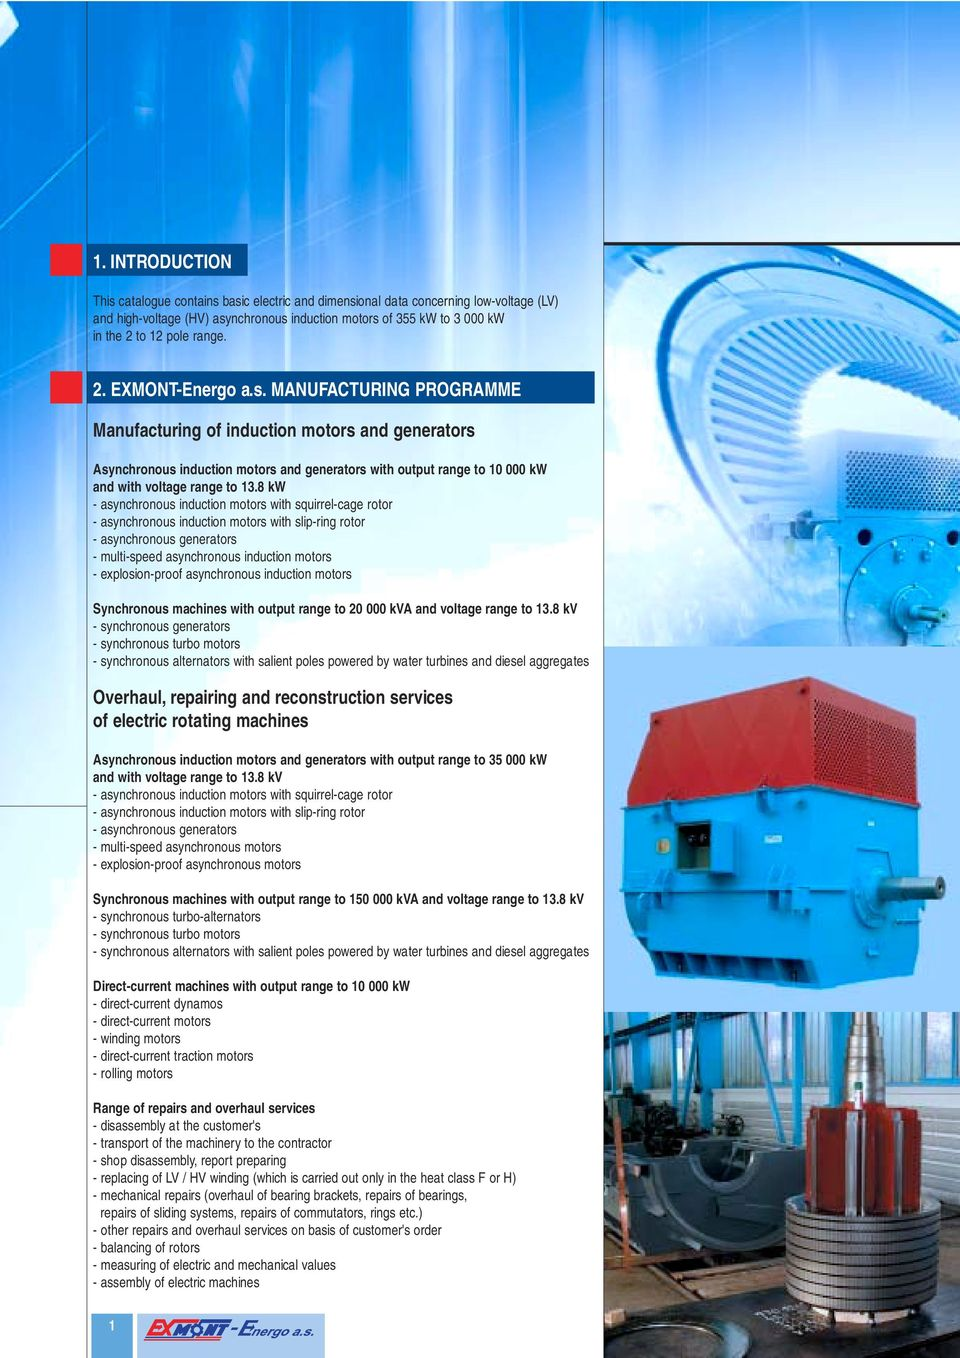 8 kw asynchronous induction motors with squirrelcage rotor asynchronous induction motors with slipring rotor asynchronous generators multispeed asynchronous induction motors explosionproof